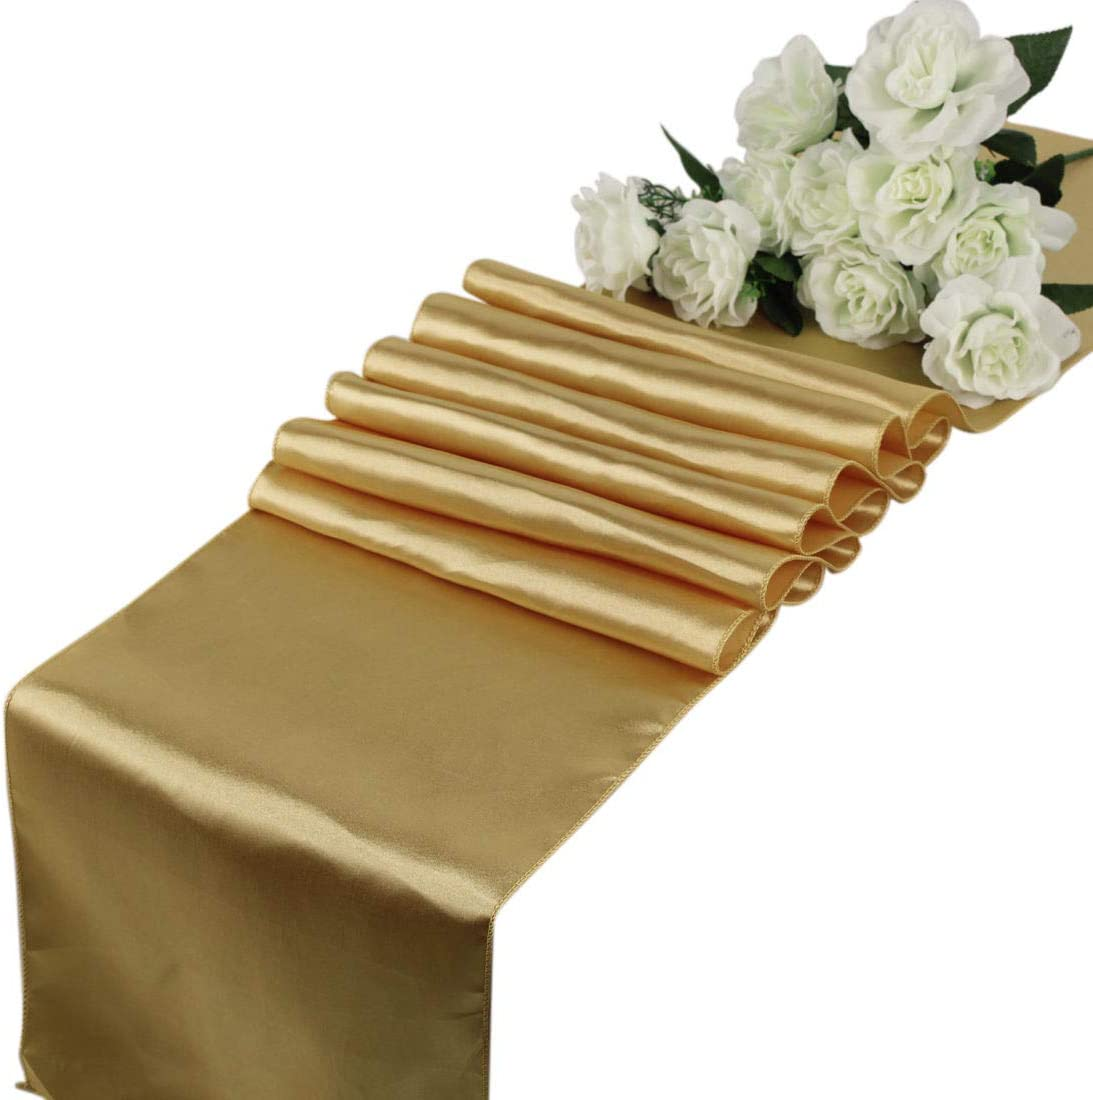 mds Pack of 10 Wedding 12 x 108 inch Satin Table Runner for Wedding Banquet Decoration- Gold: Home & Kitchen